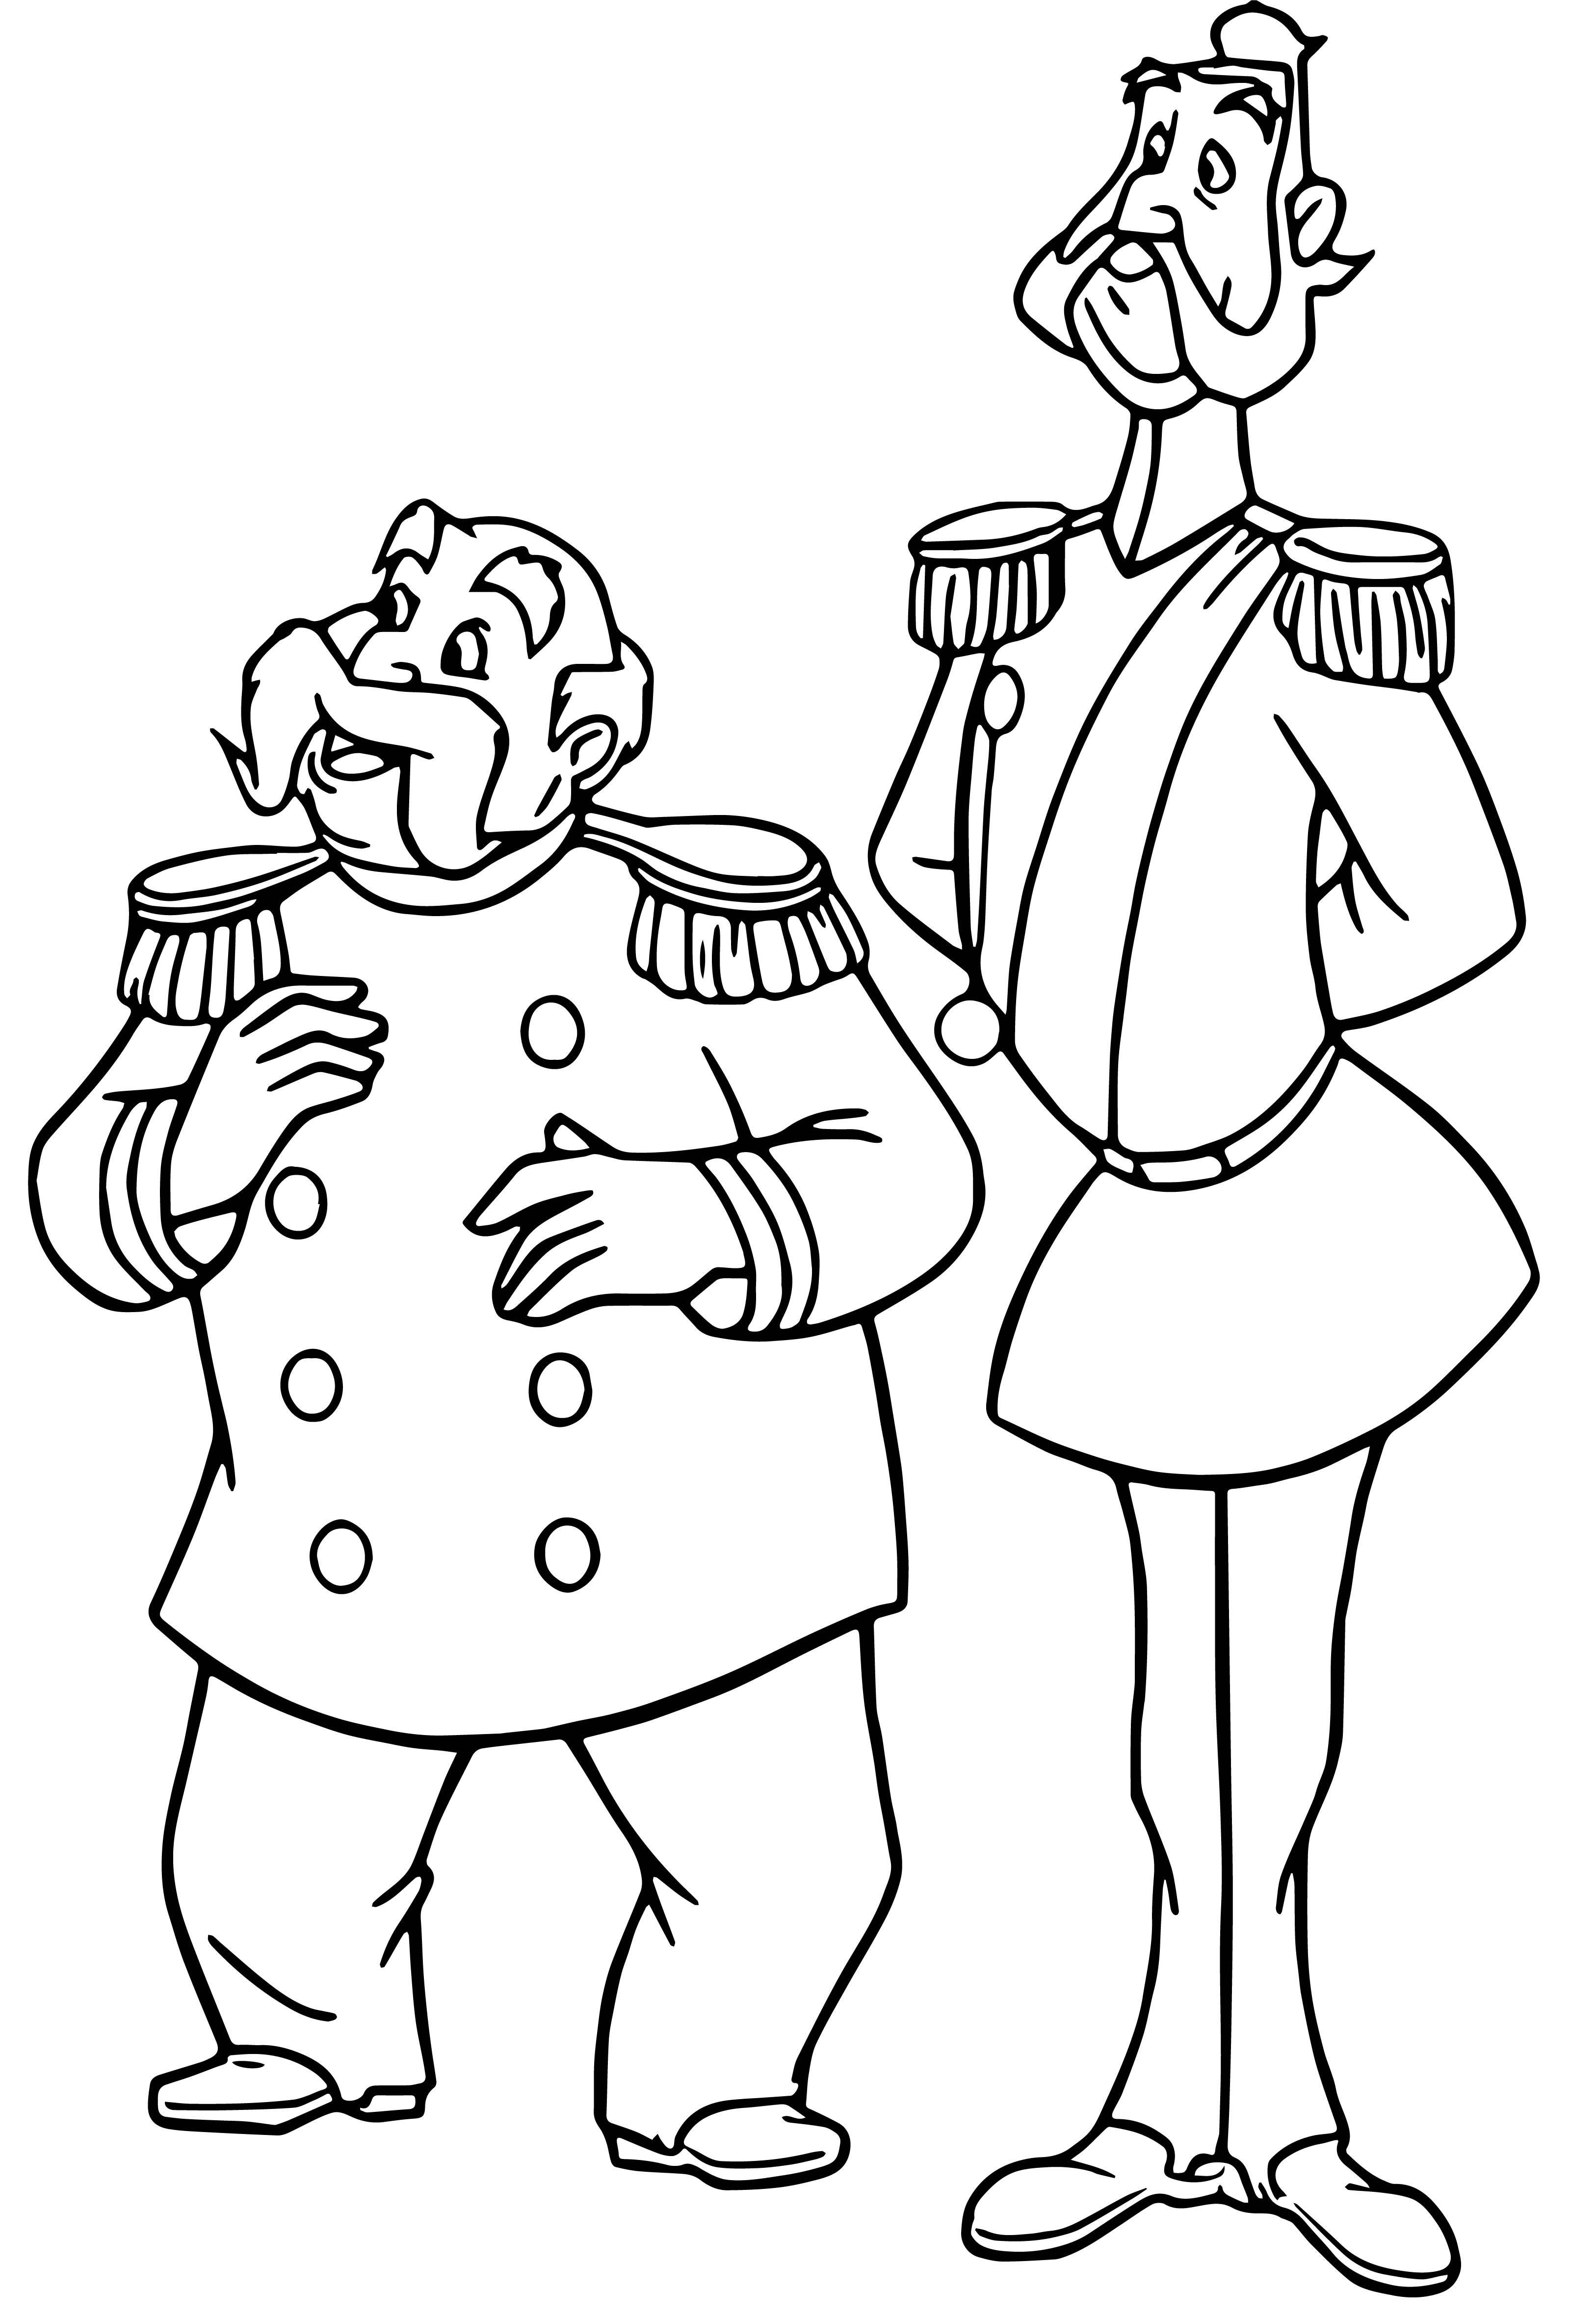 Duke And King Coloring Page 2